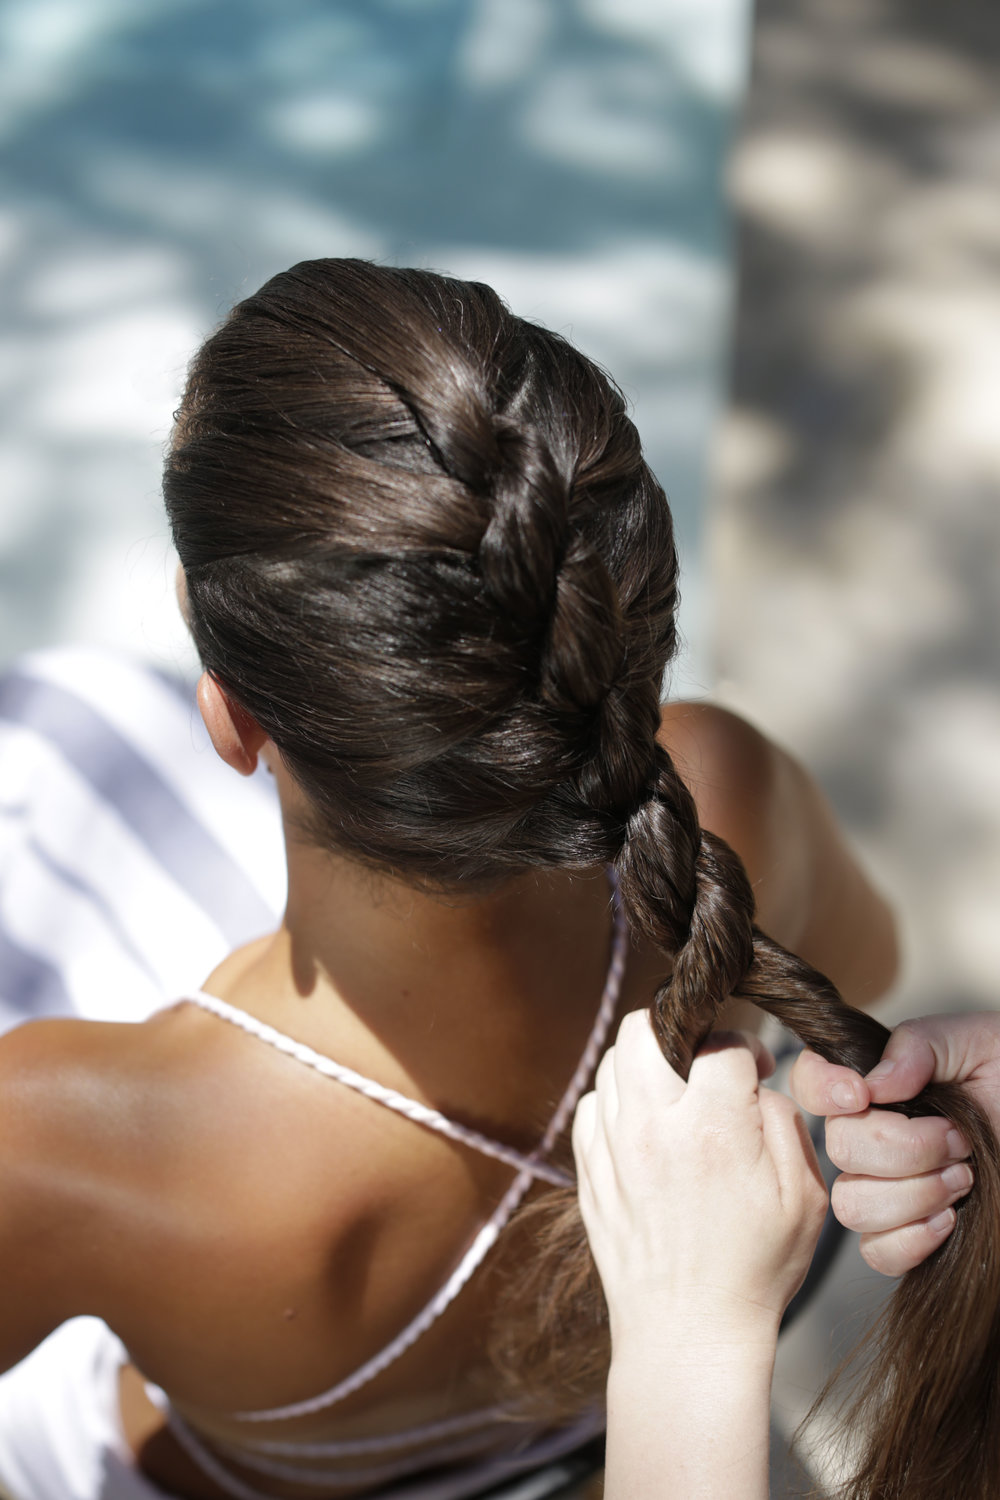 - As you twist the hair clockwise wrap each strand around each other creating the rope braid